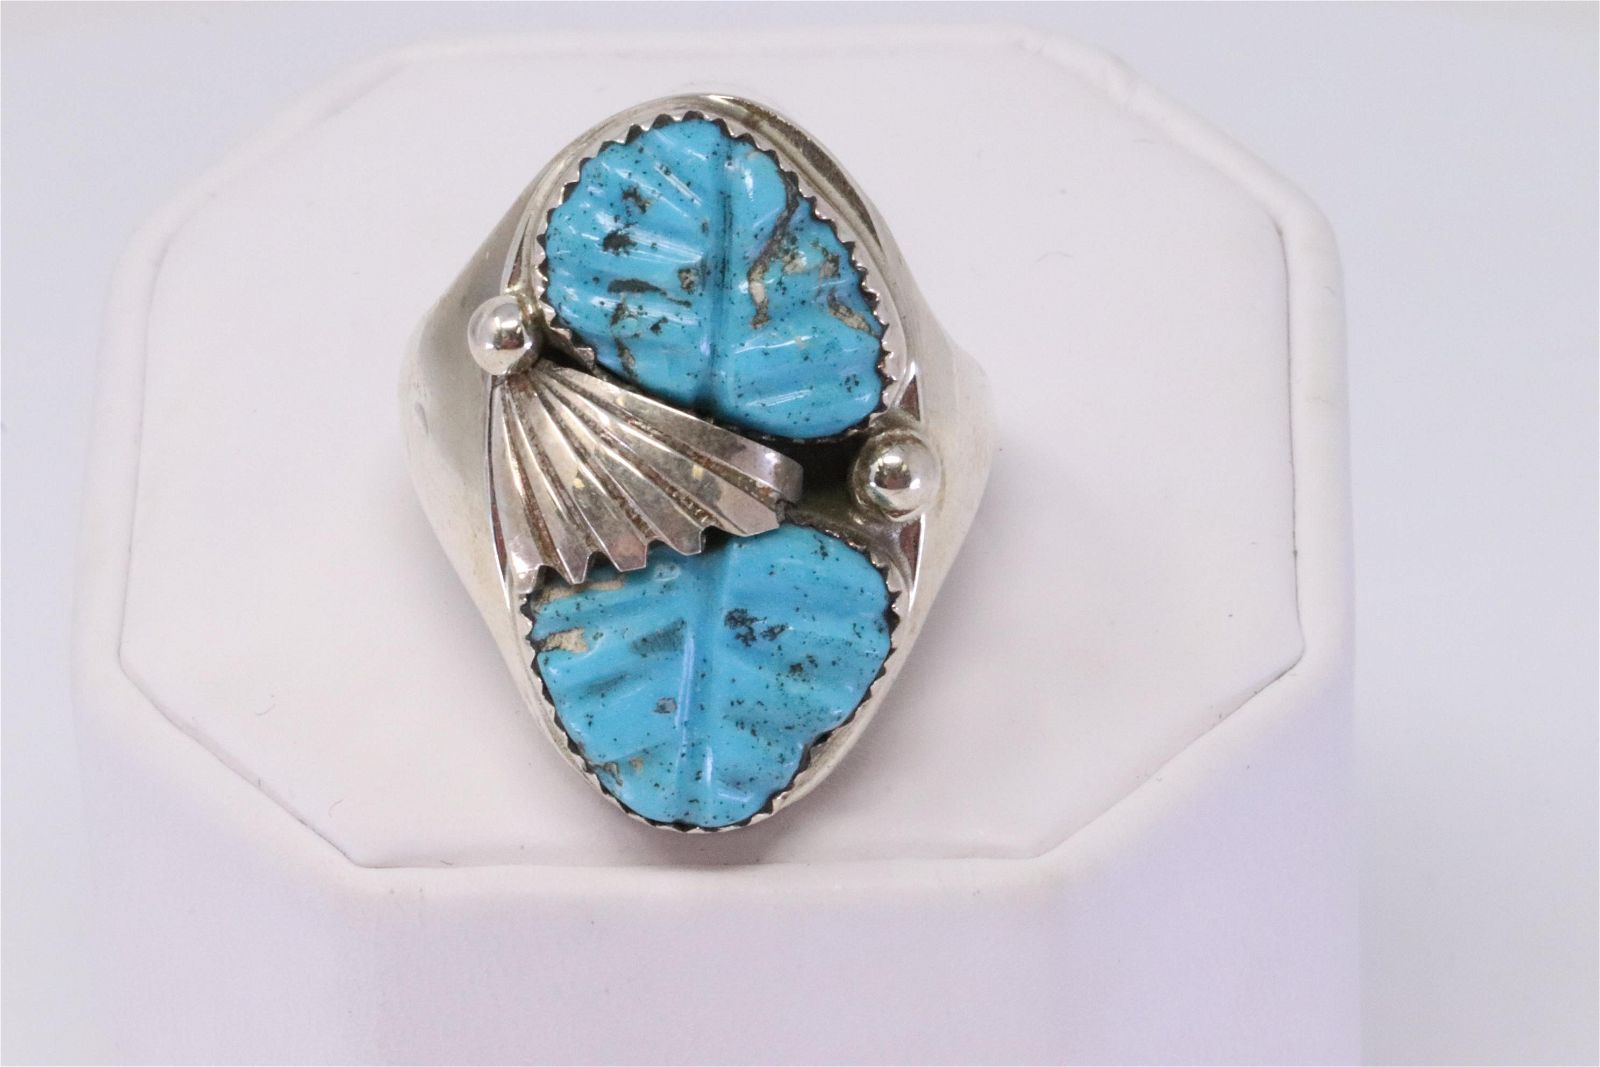 Native American Zuni Handmade Sterling Silver Turquoise